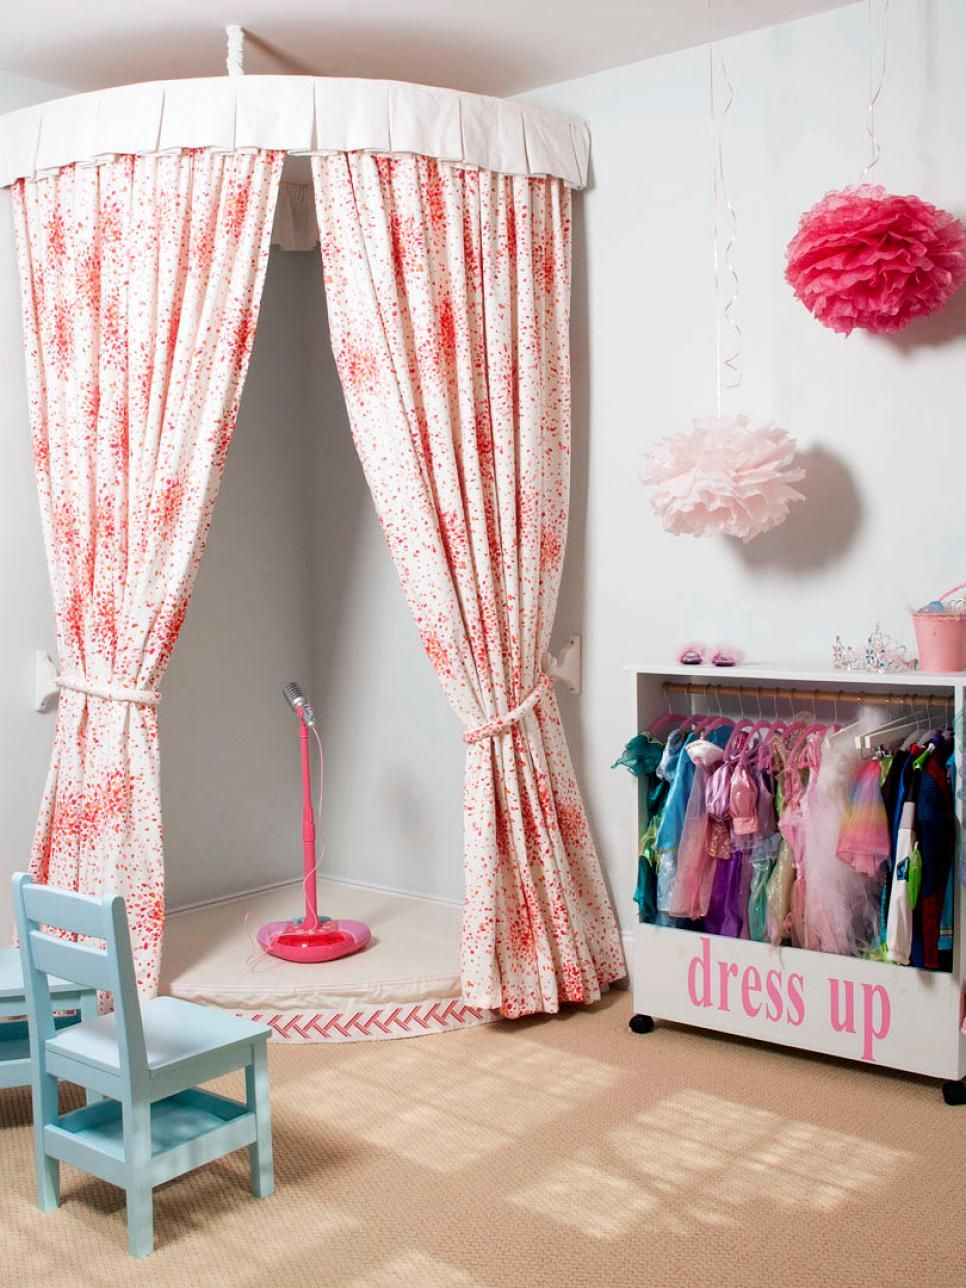 Amazing Kids Rooms - Gallery Of Amazing Kids Bedrooms And Playrooms